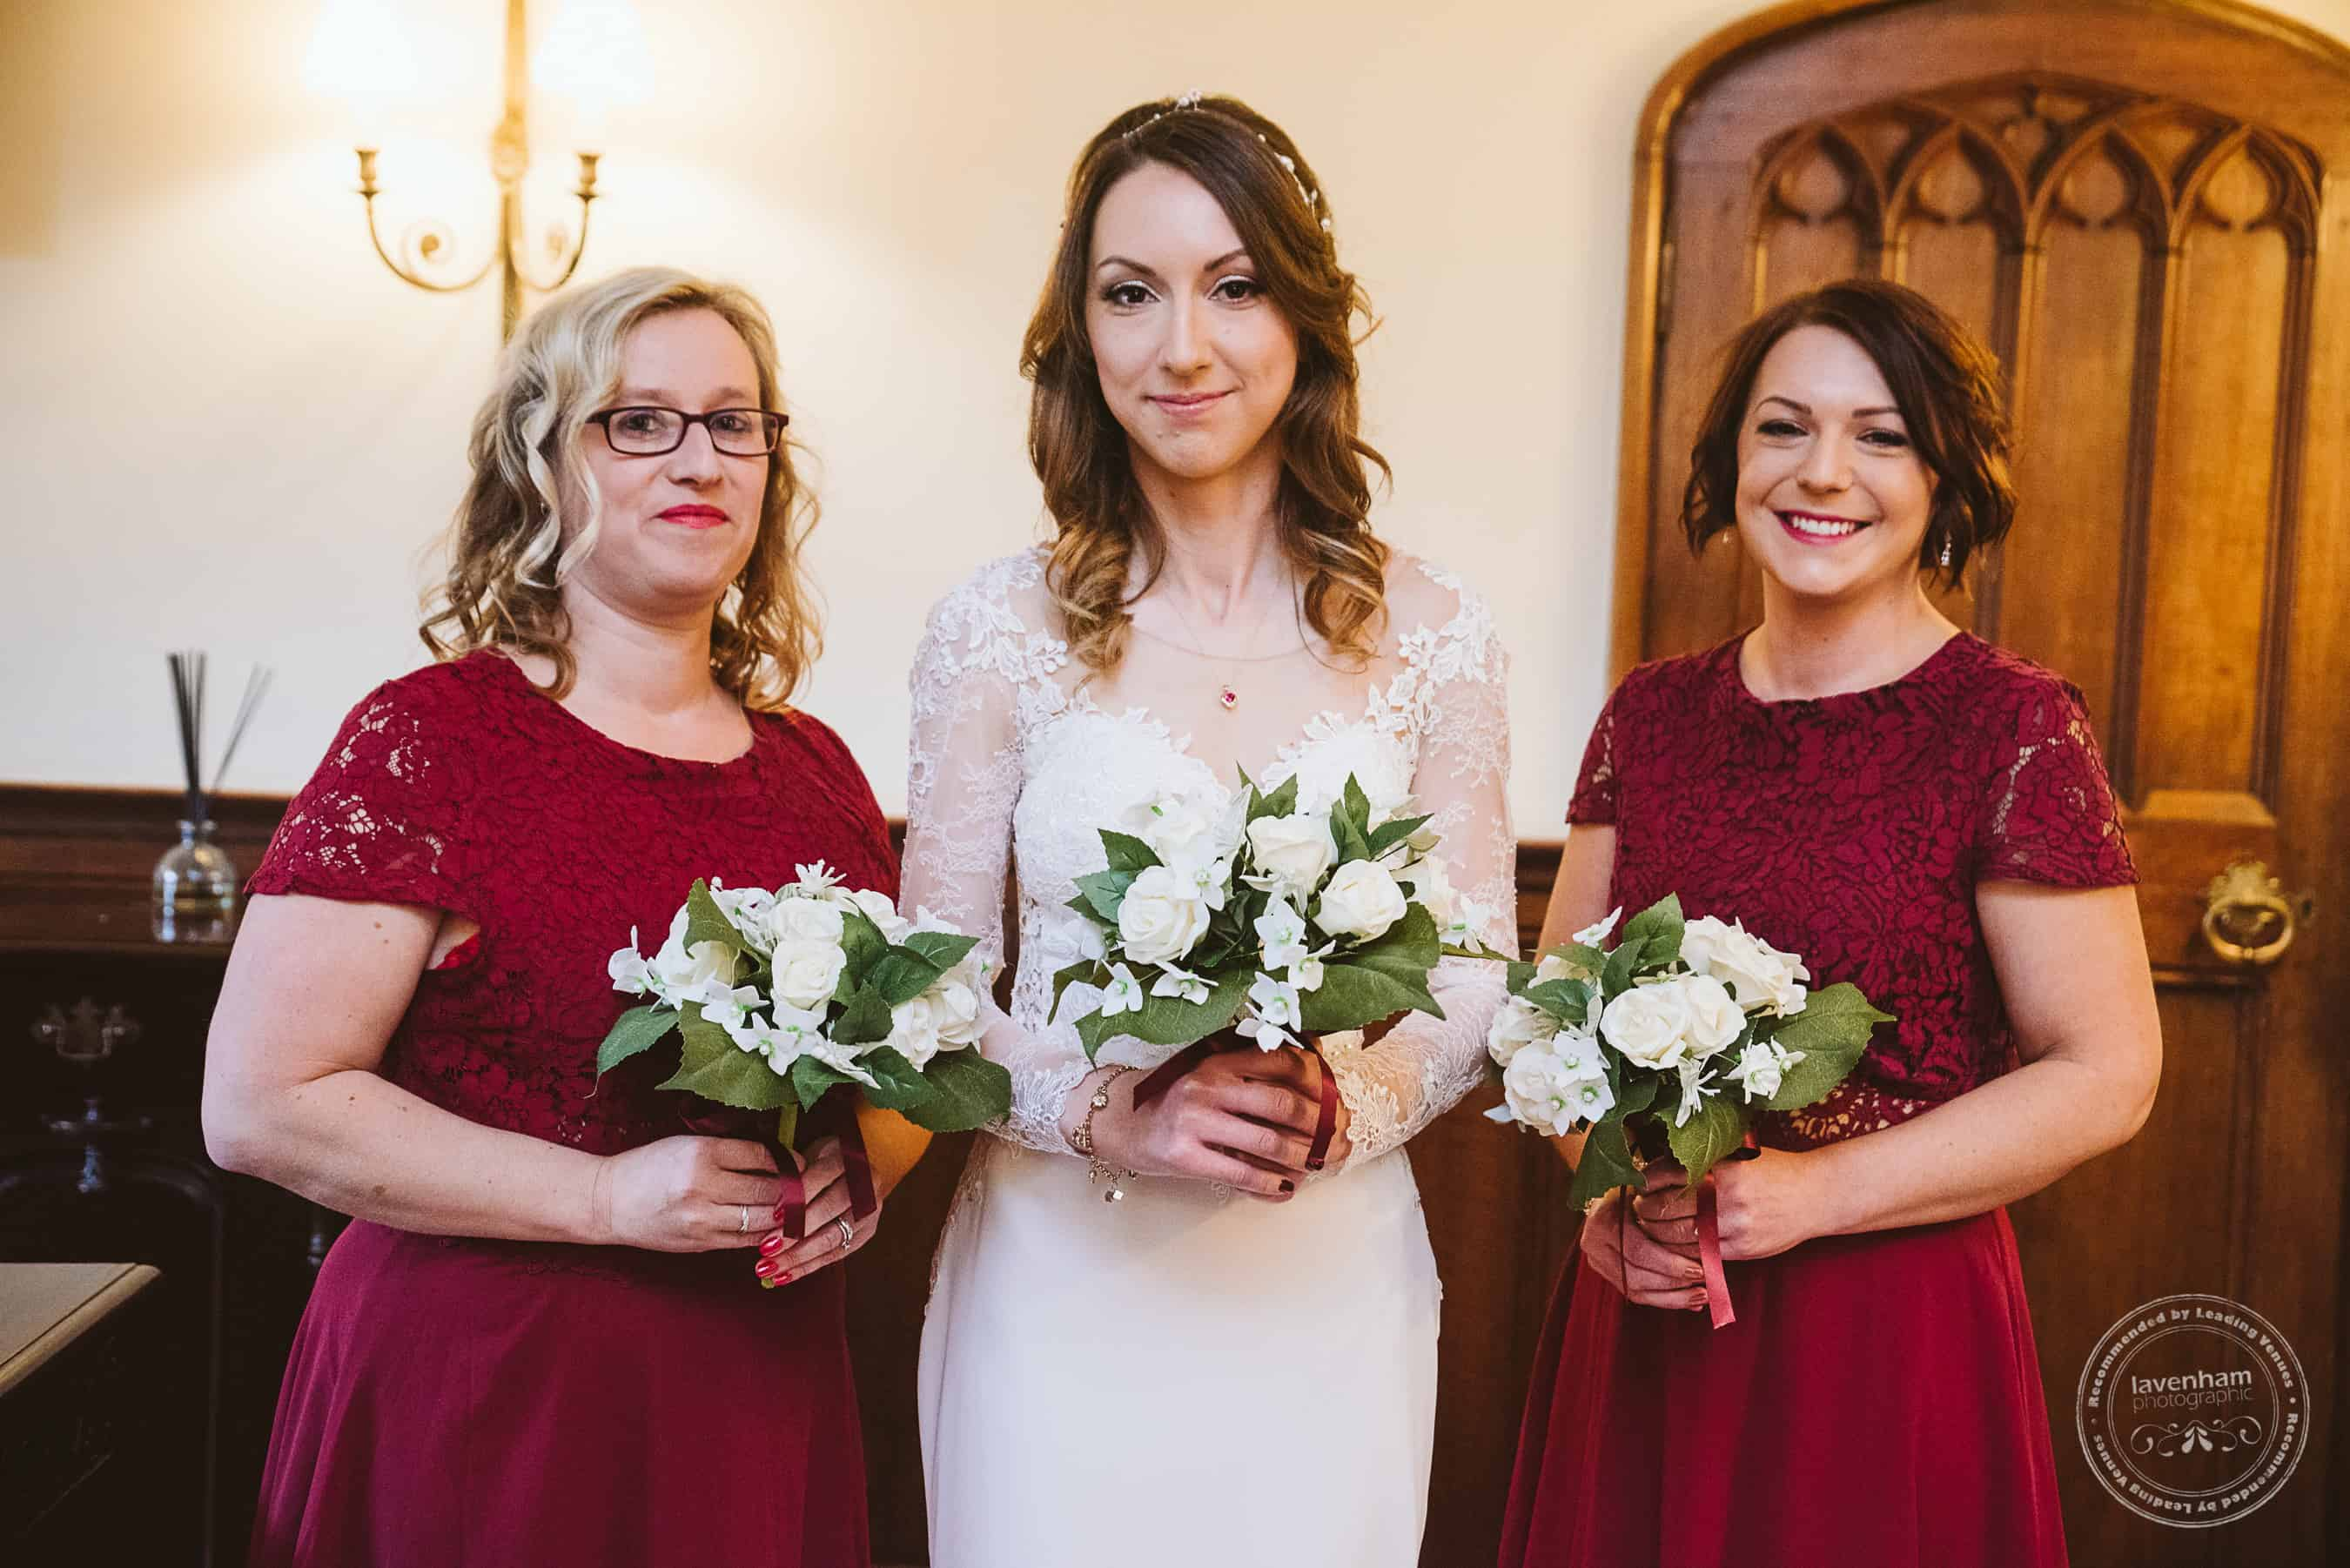 041118 Woodhall Manor Wedding Photography by Lavenham Photographic 032